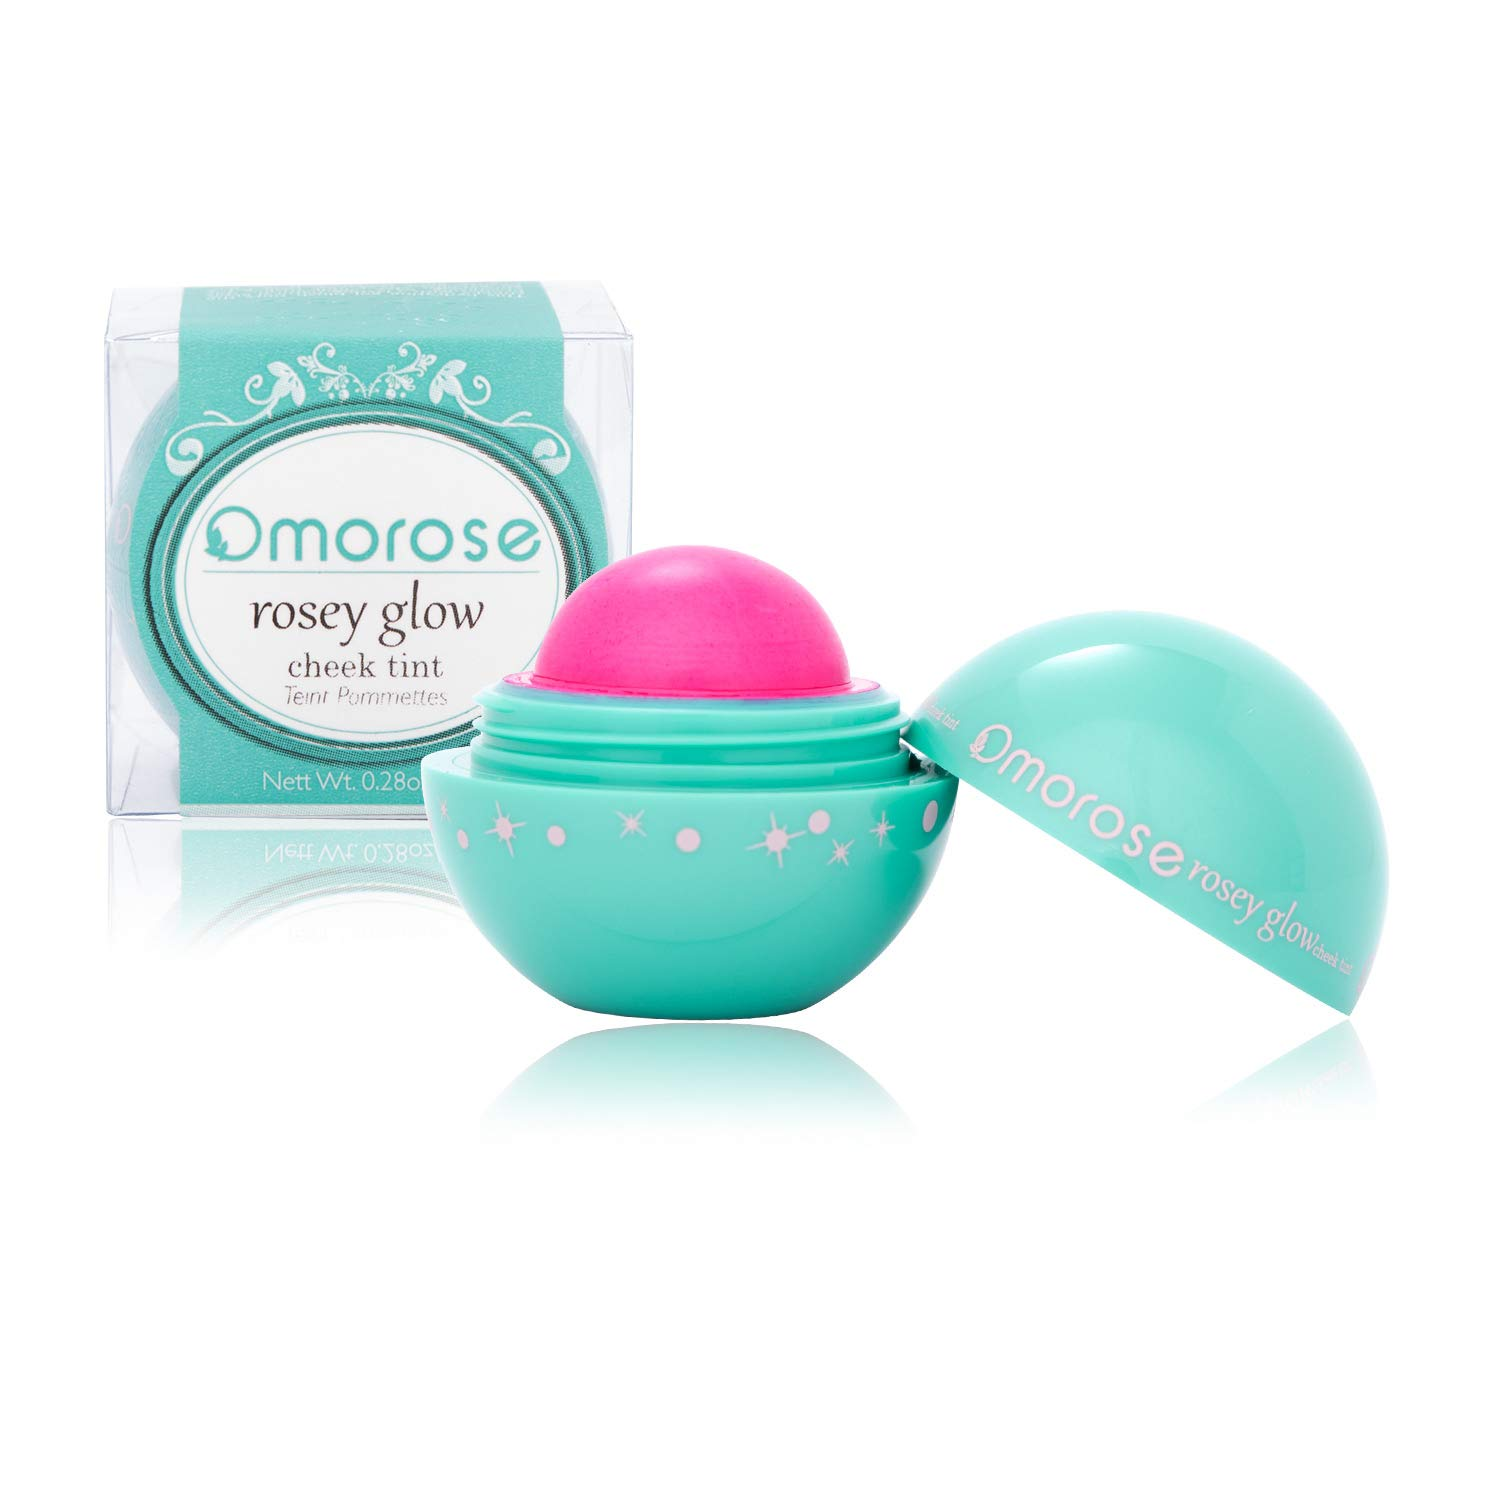 Omorose Cosmetics Colorful Pigmented Natural Sheer Opaque Blendable Flush Glow Glowy Dewy Highlight Cruelty Free Beauty Makeup Glow Cream Gel Hydrating Lip Cheek Tint Blush, First Love Hot Pink